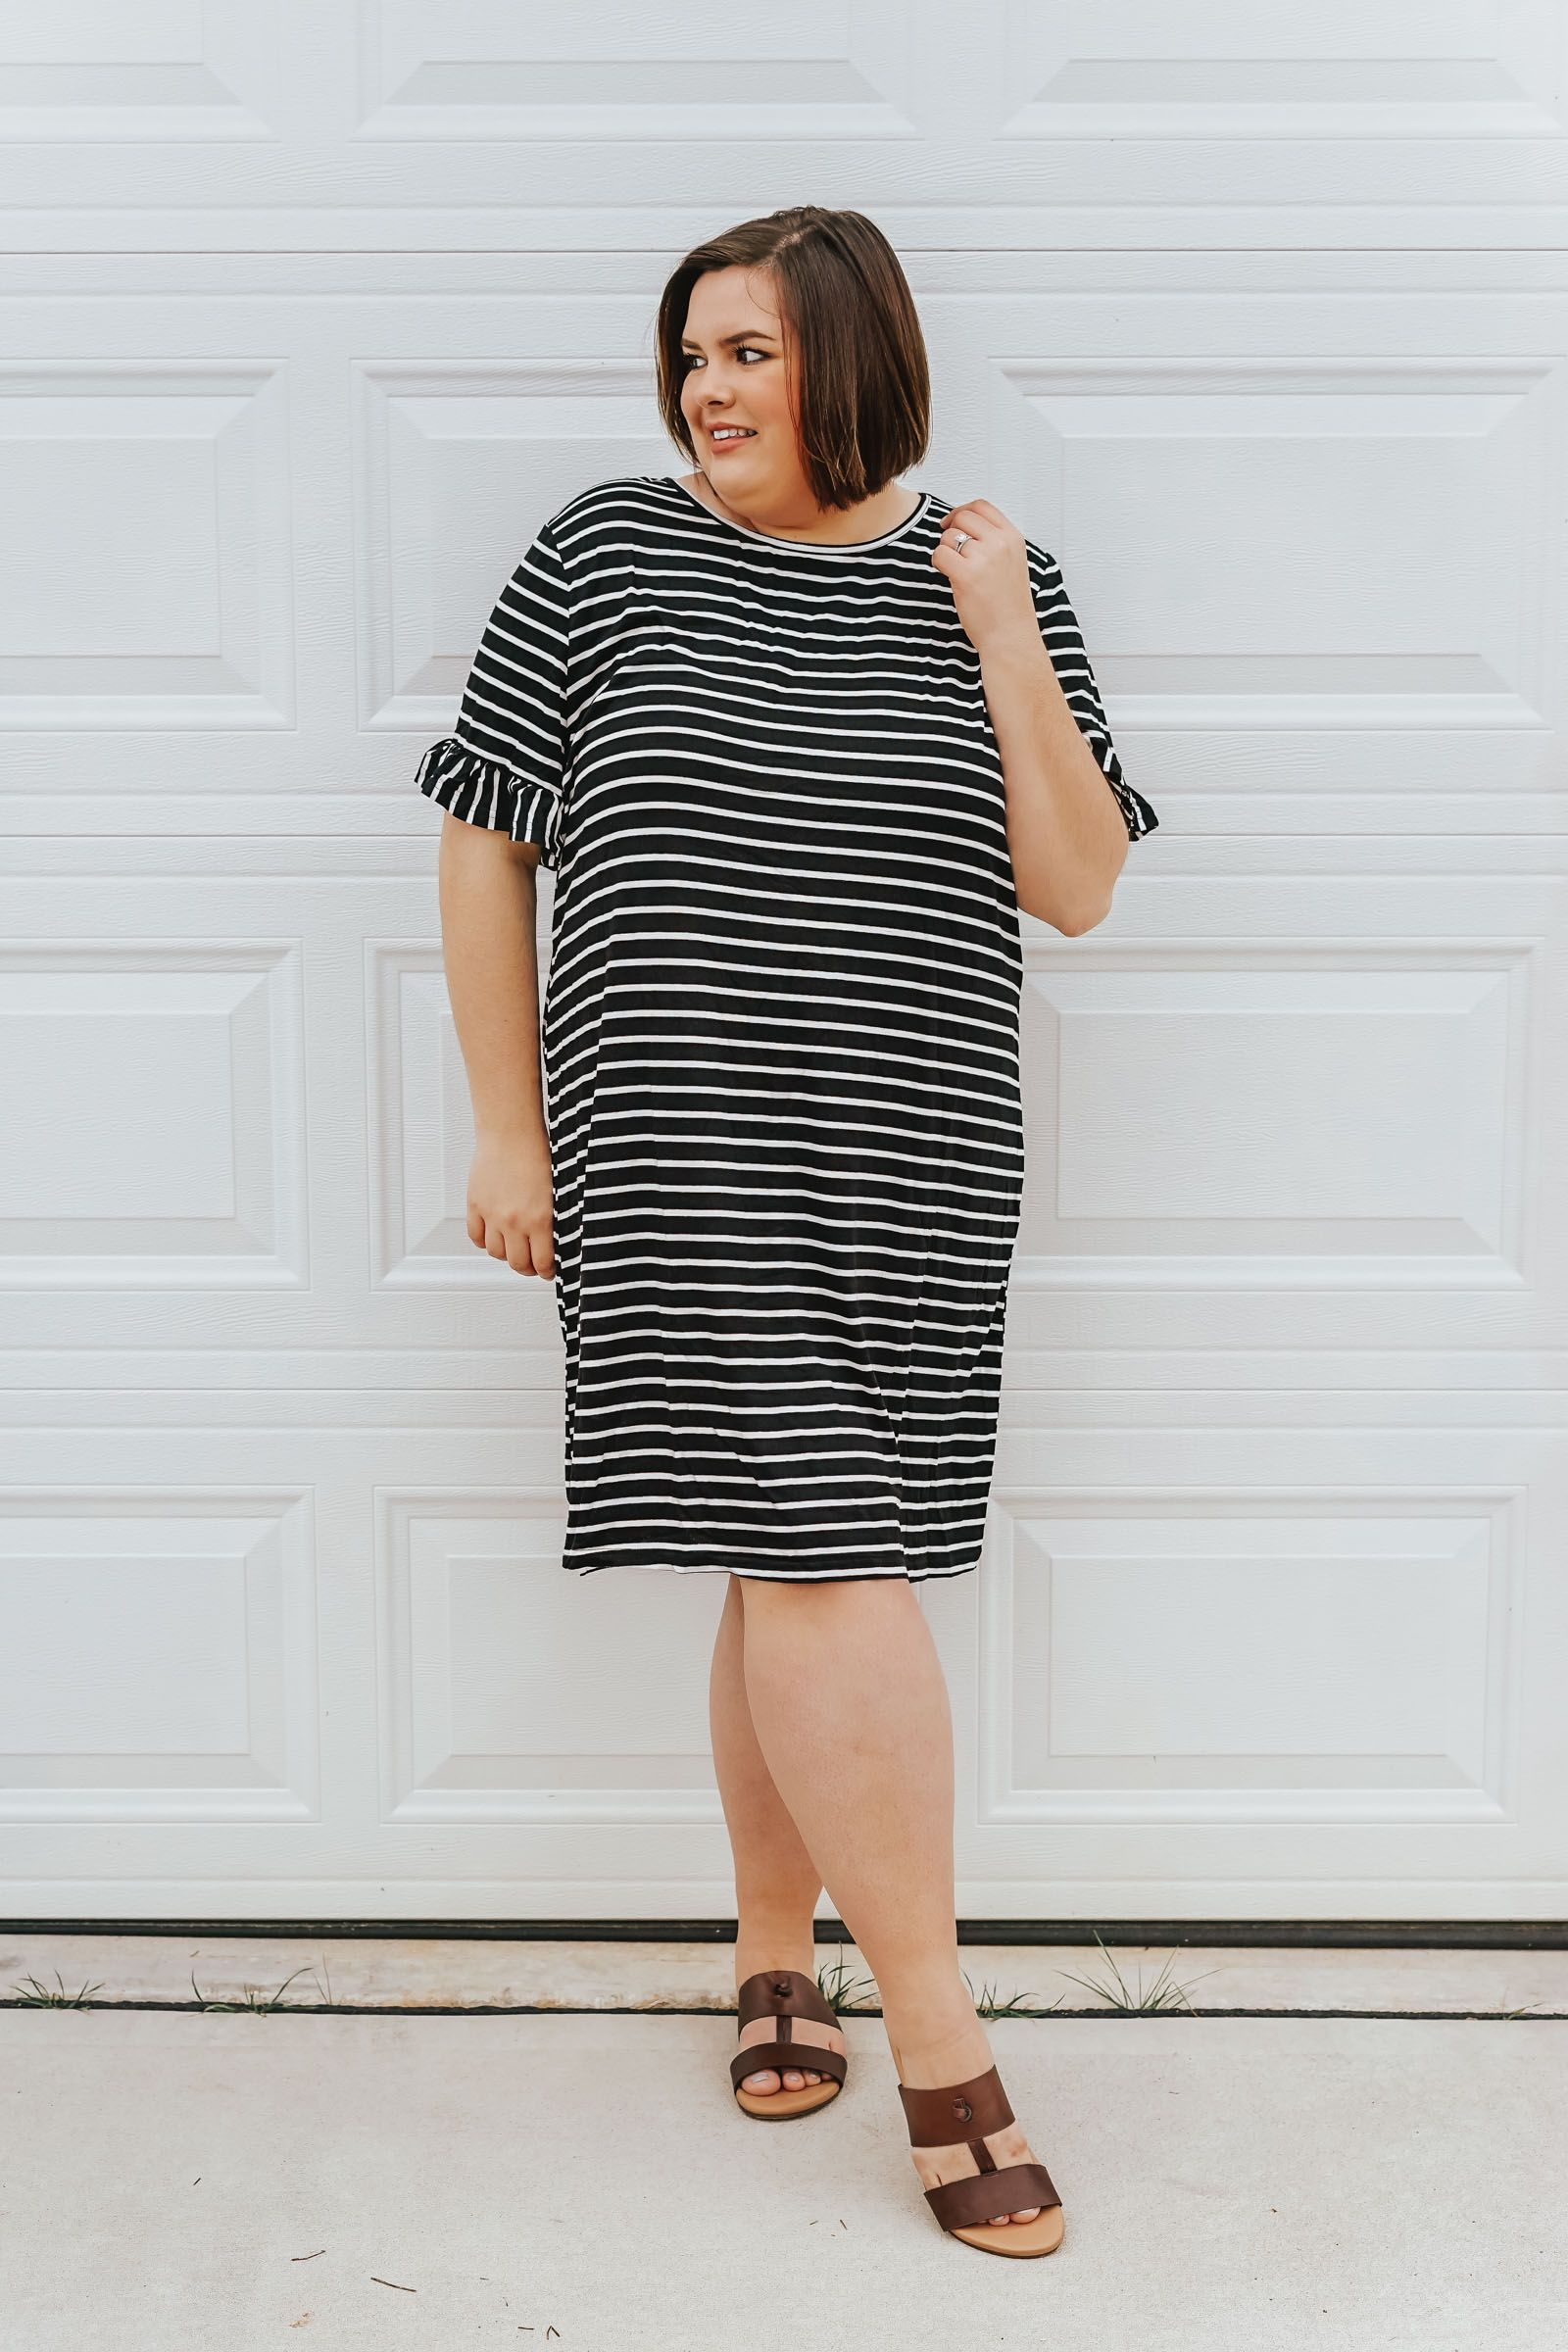 a248b42a9f1 Plus Size Amazon Prime Spring Clothing Haul #amazon #amazonprime  #amazonfashion #amazonclothing #